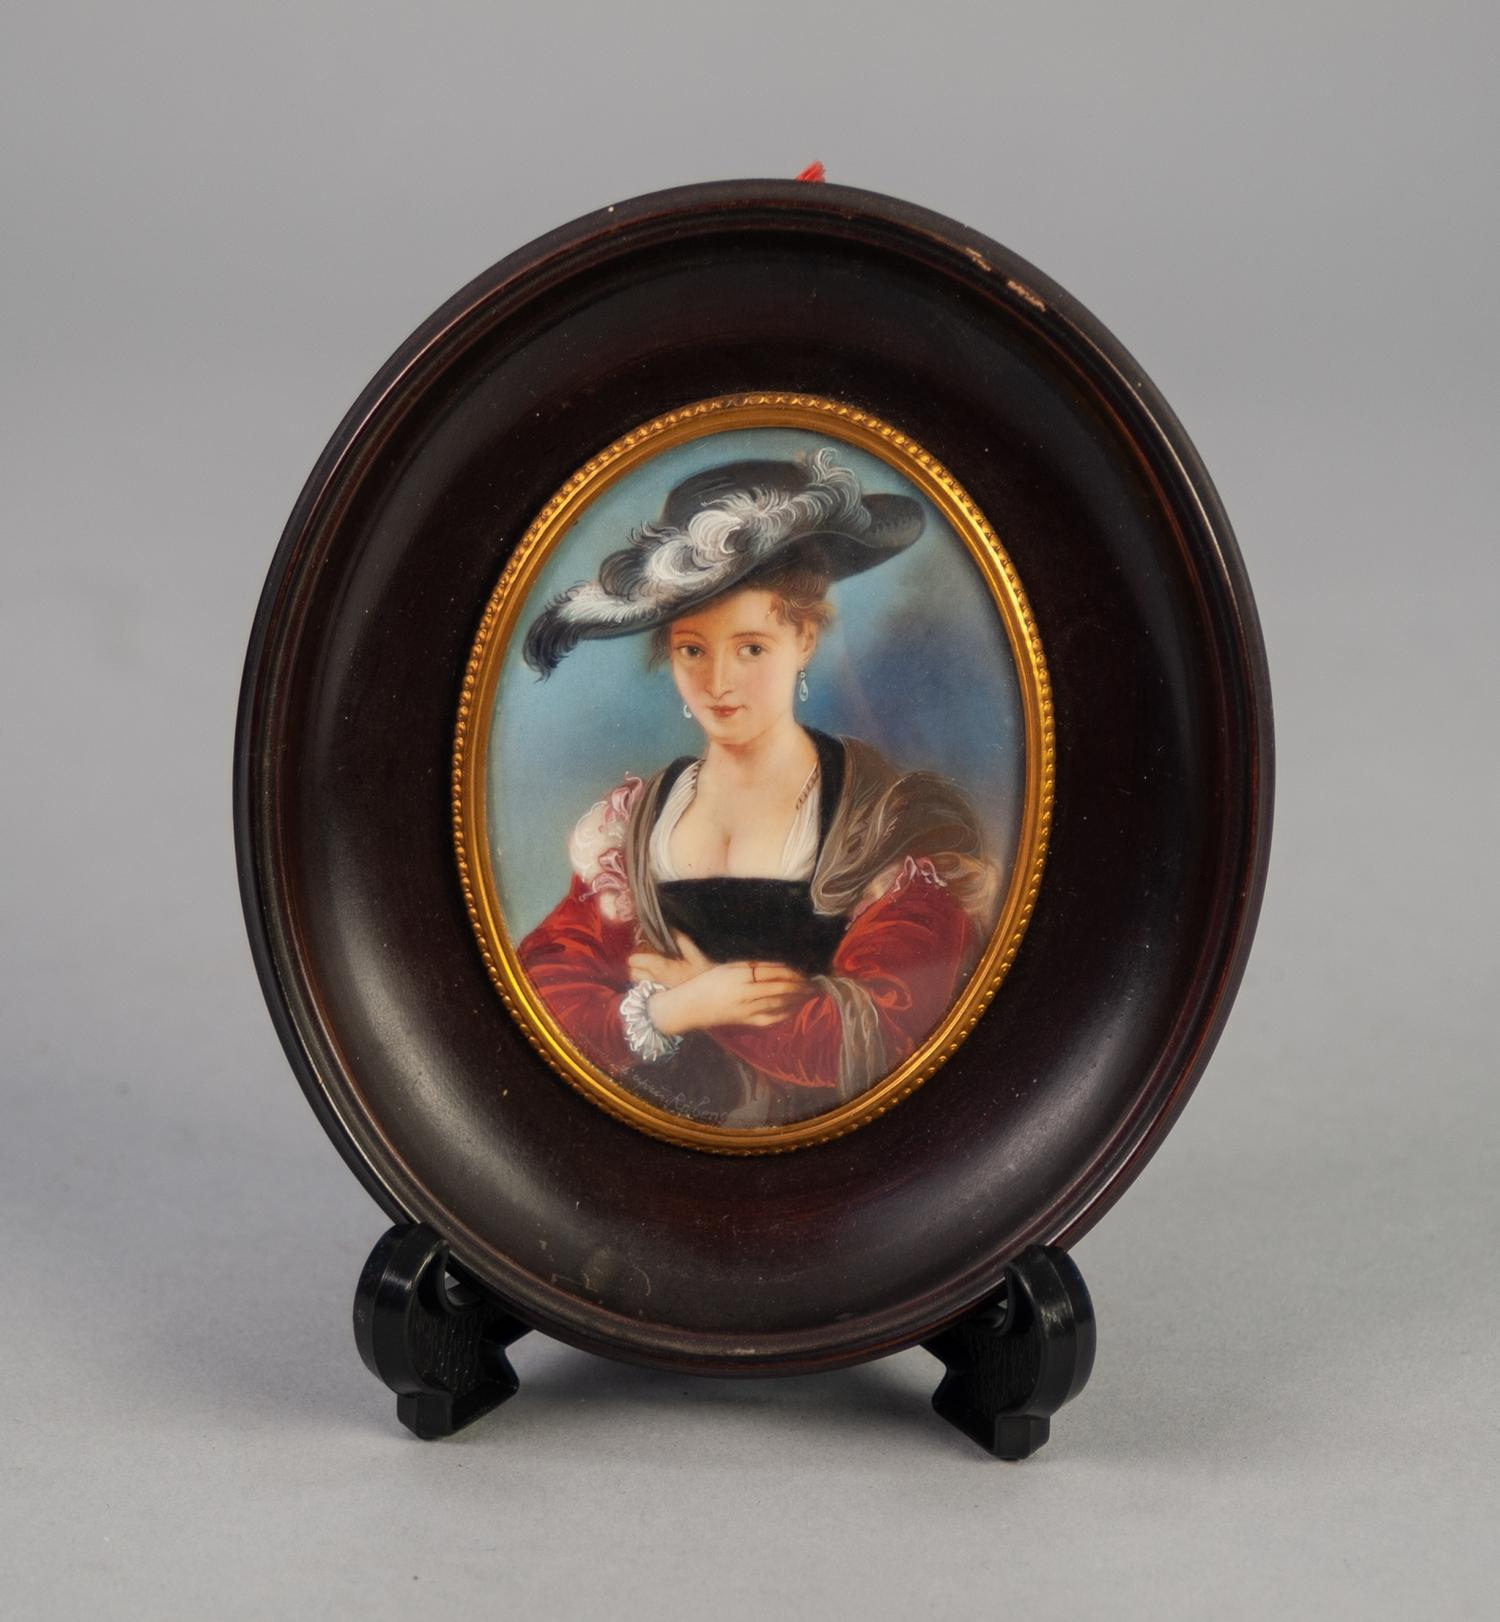 "Lot 882 - AFTER RUBENS PORTRAIT MINIATURE 'Le Chapeau de Paille' oval 3 1/2"" x 2 1/2"" in ebonised frame"